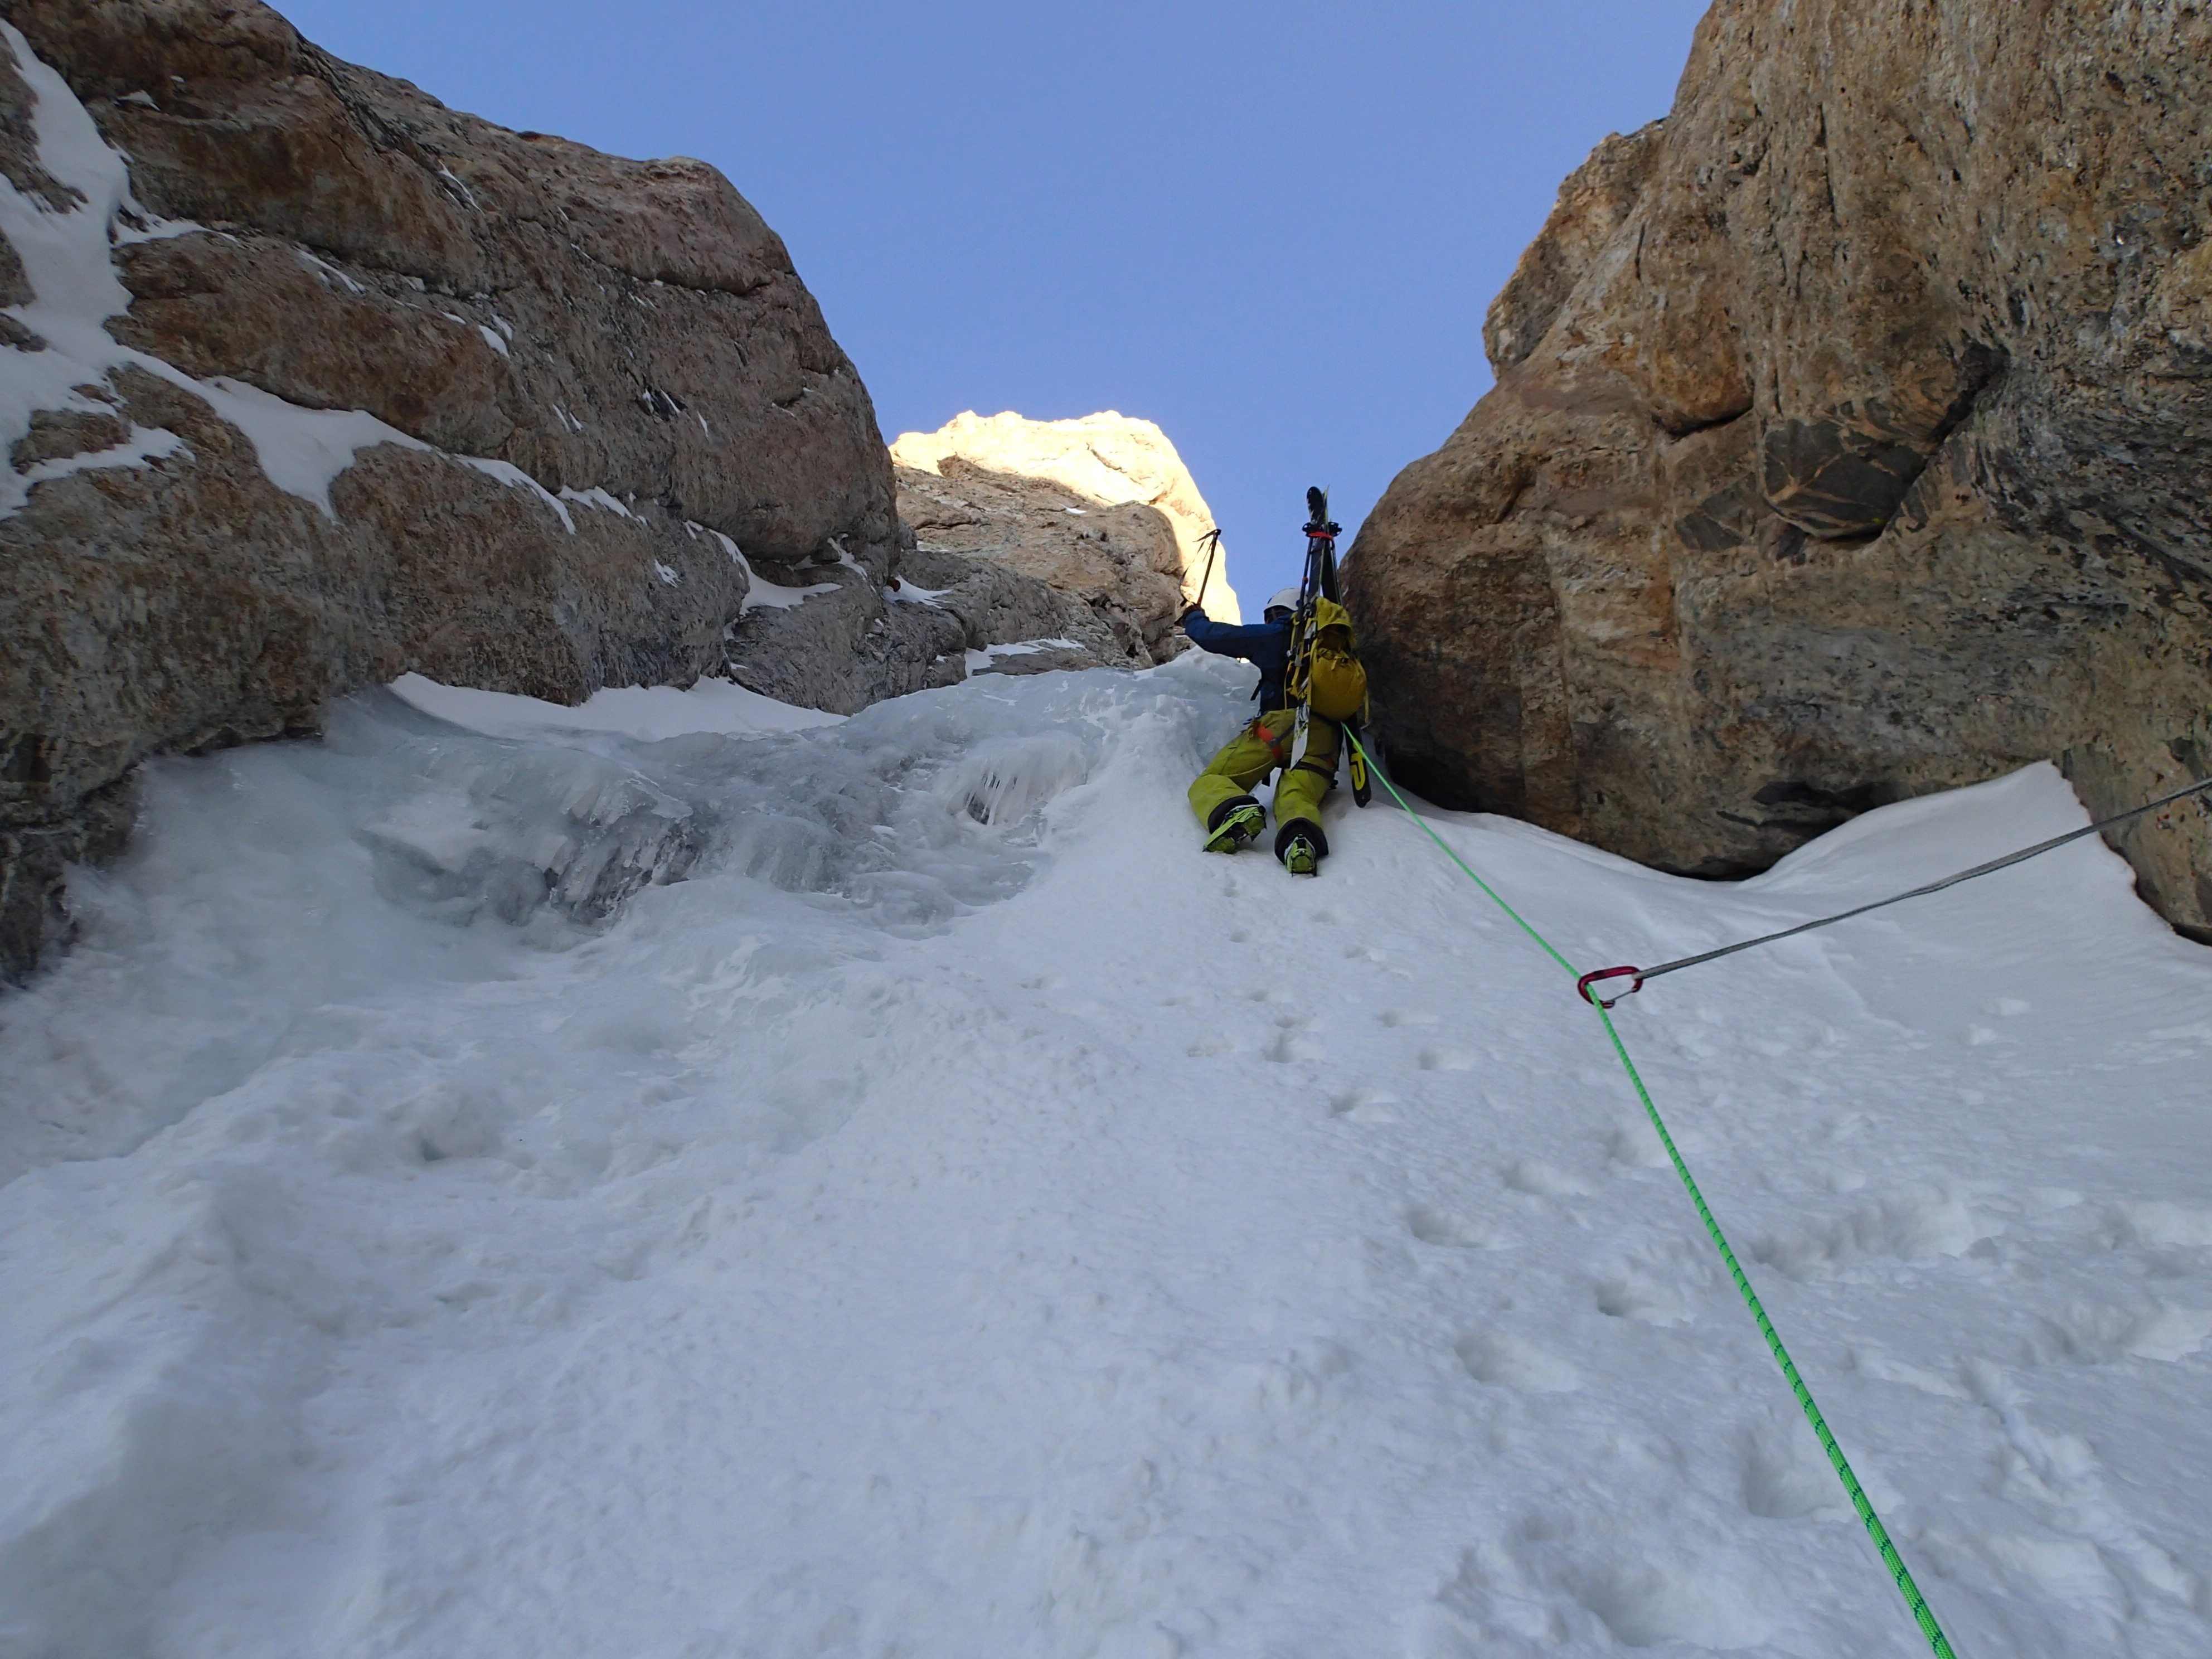 Ice climbing with Alpax axes up the Grand Teton in winter